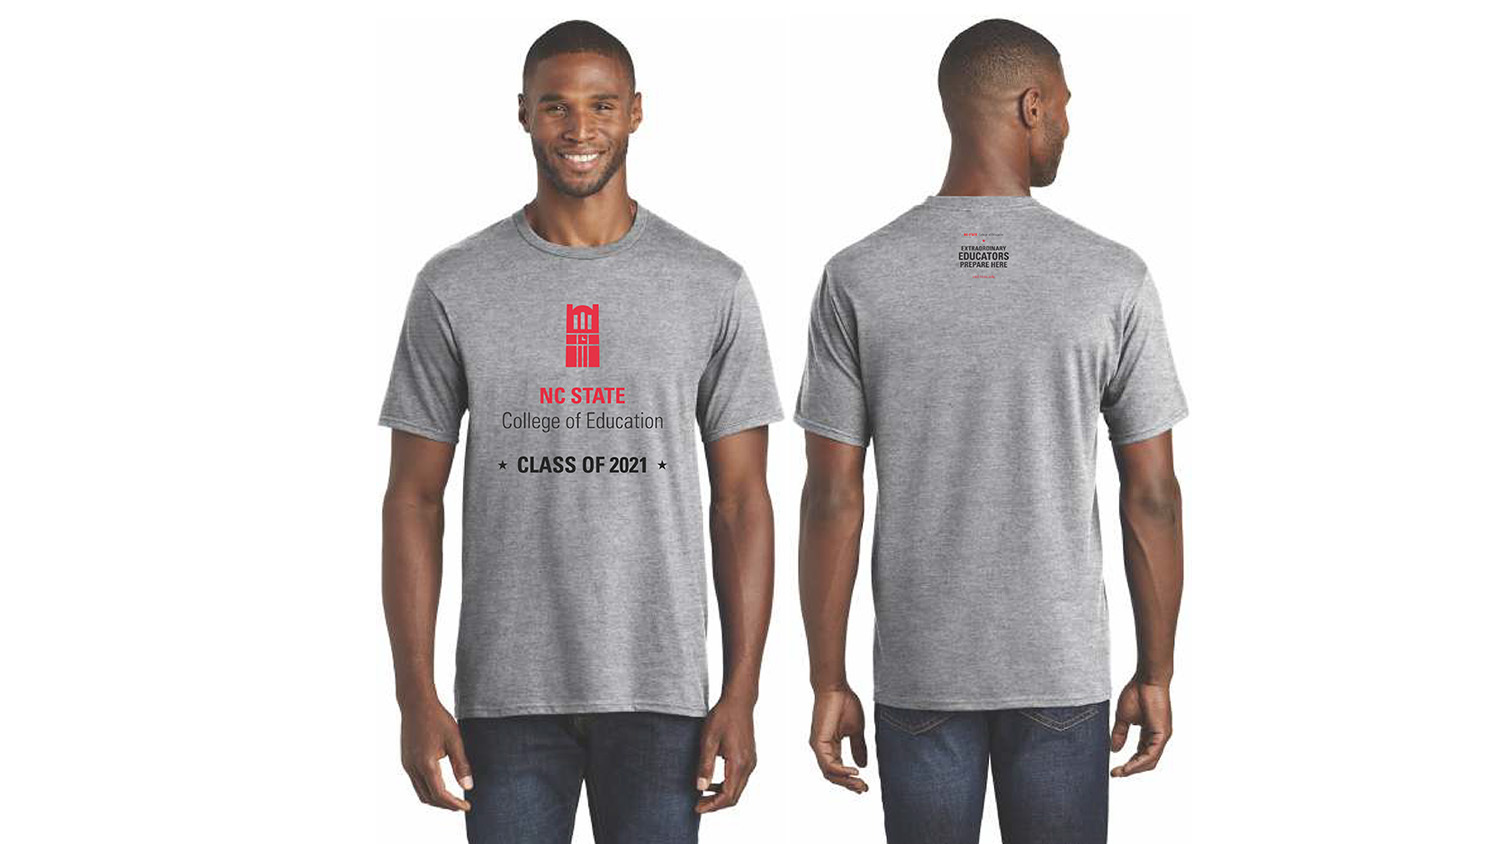 A t-shirt May 2021 graduates of the NC State College of Education received